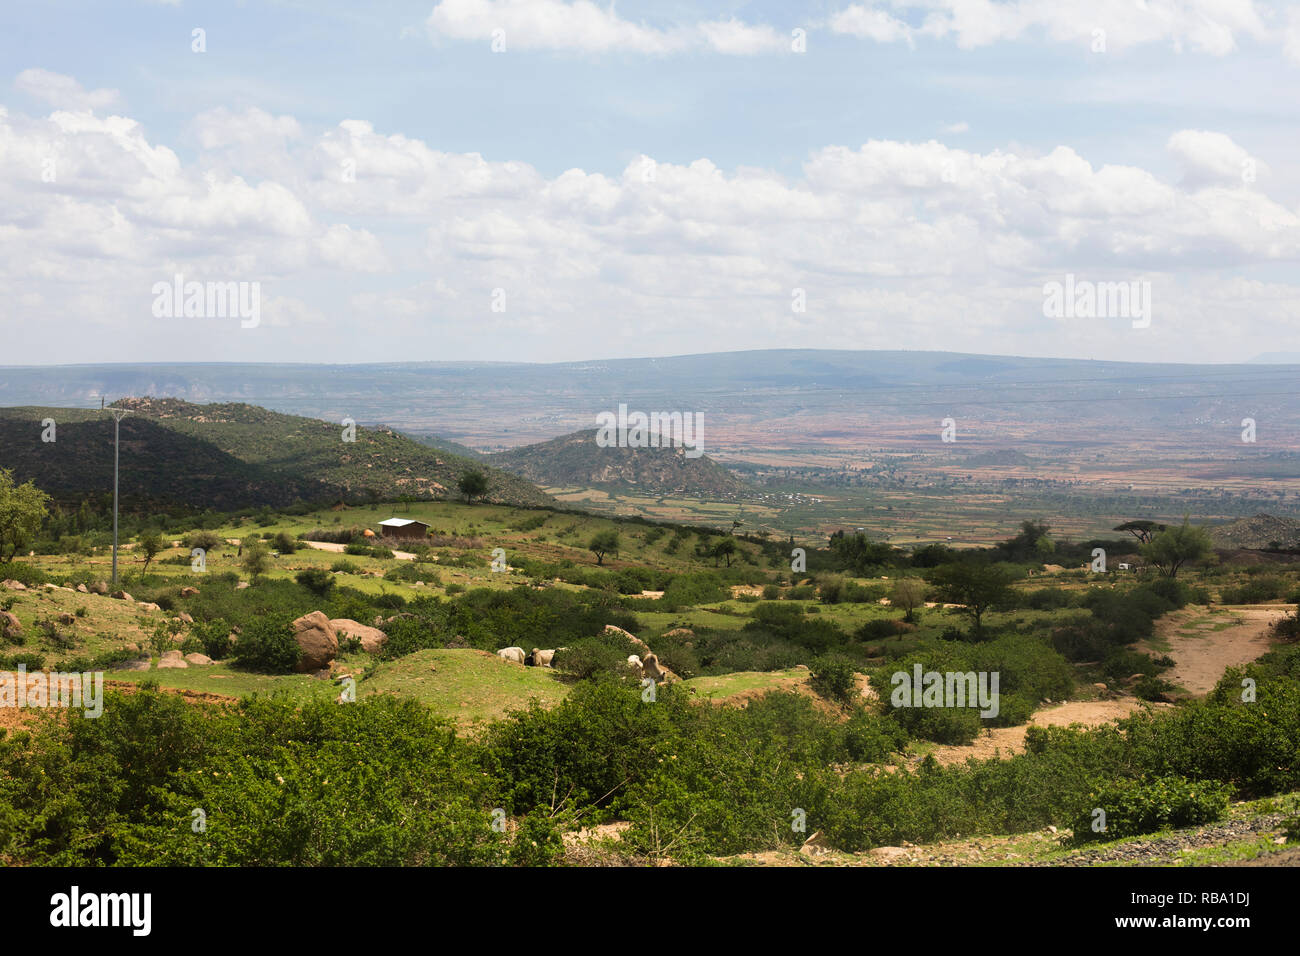 Harar / Ethiopia - May 2017: The landscape close to Harar. - Stock Image